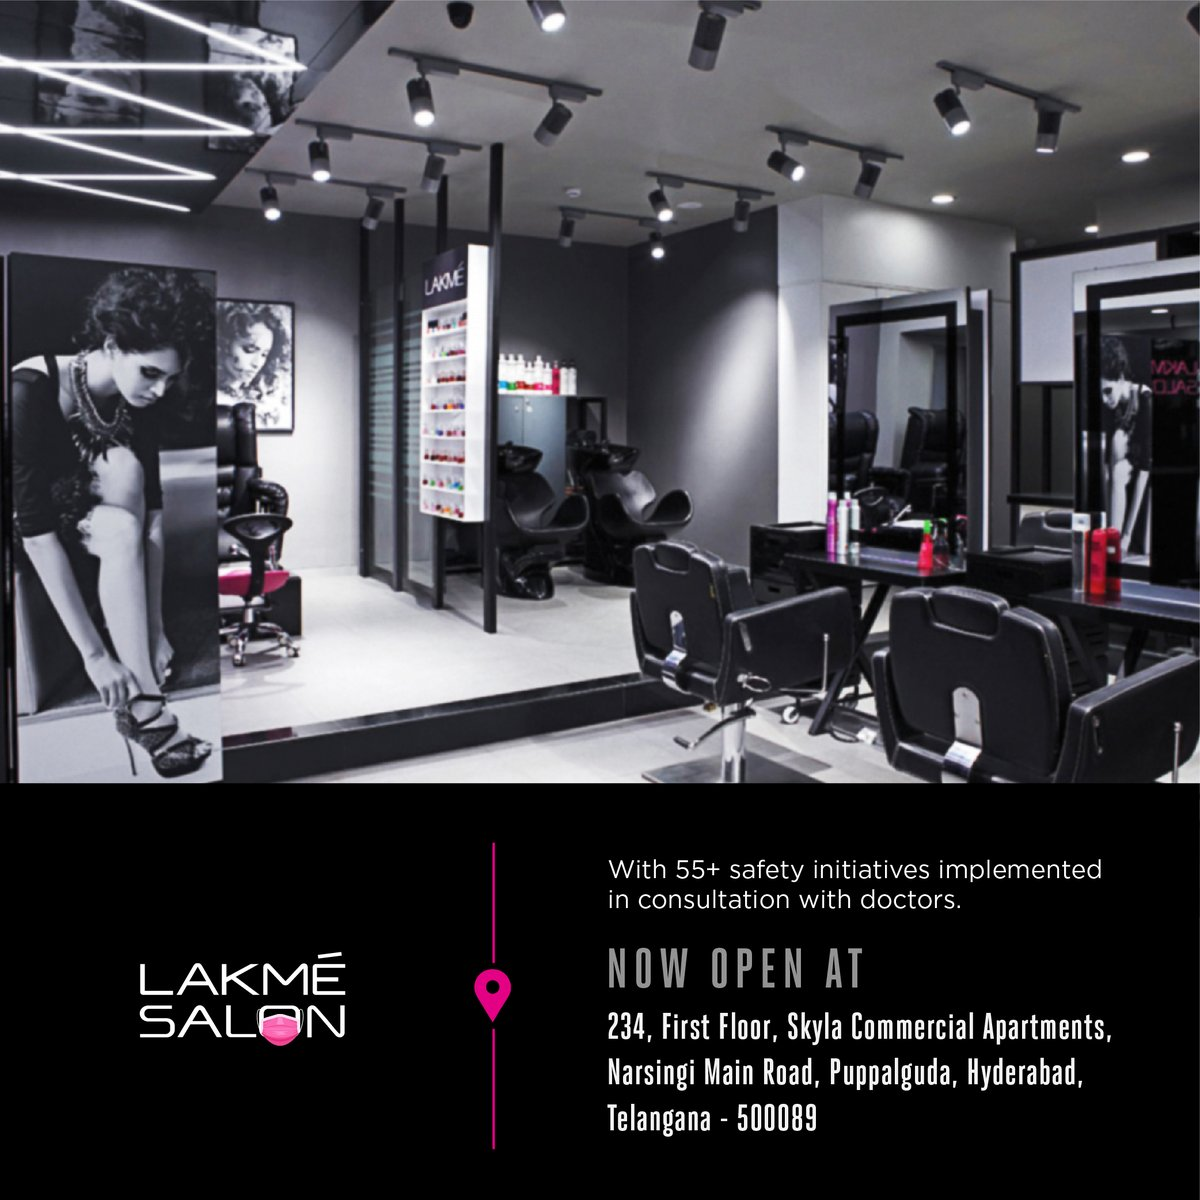 Hyderabad, we just couldn't get enough of you! Lakmé Salon is now open at Narsingi Main Road 📌 Book your slots today and drop by for a head to toe beauty makeover 🌻 📞 us on 1800-123-1952 or download the Lakmé Salon App to pre-book your appointment.  #Newsalonopening https://t.co/bjZzwHY09A